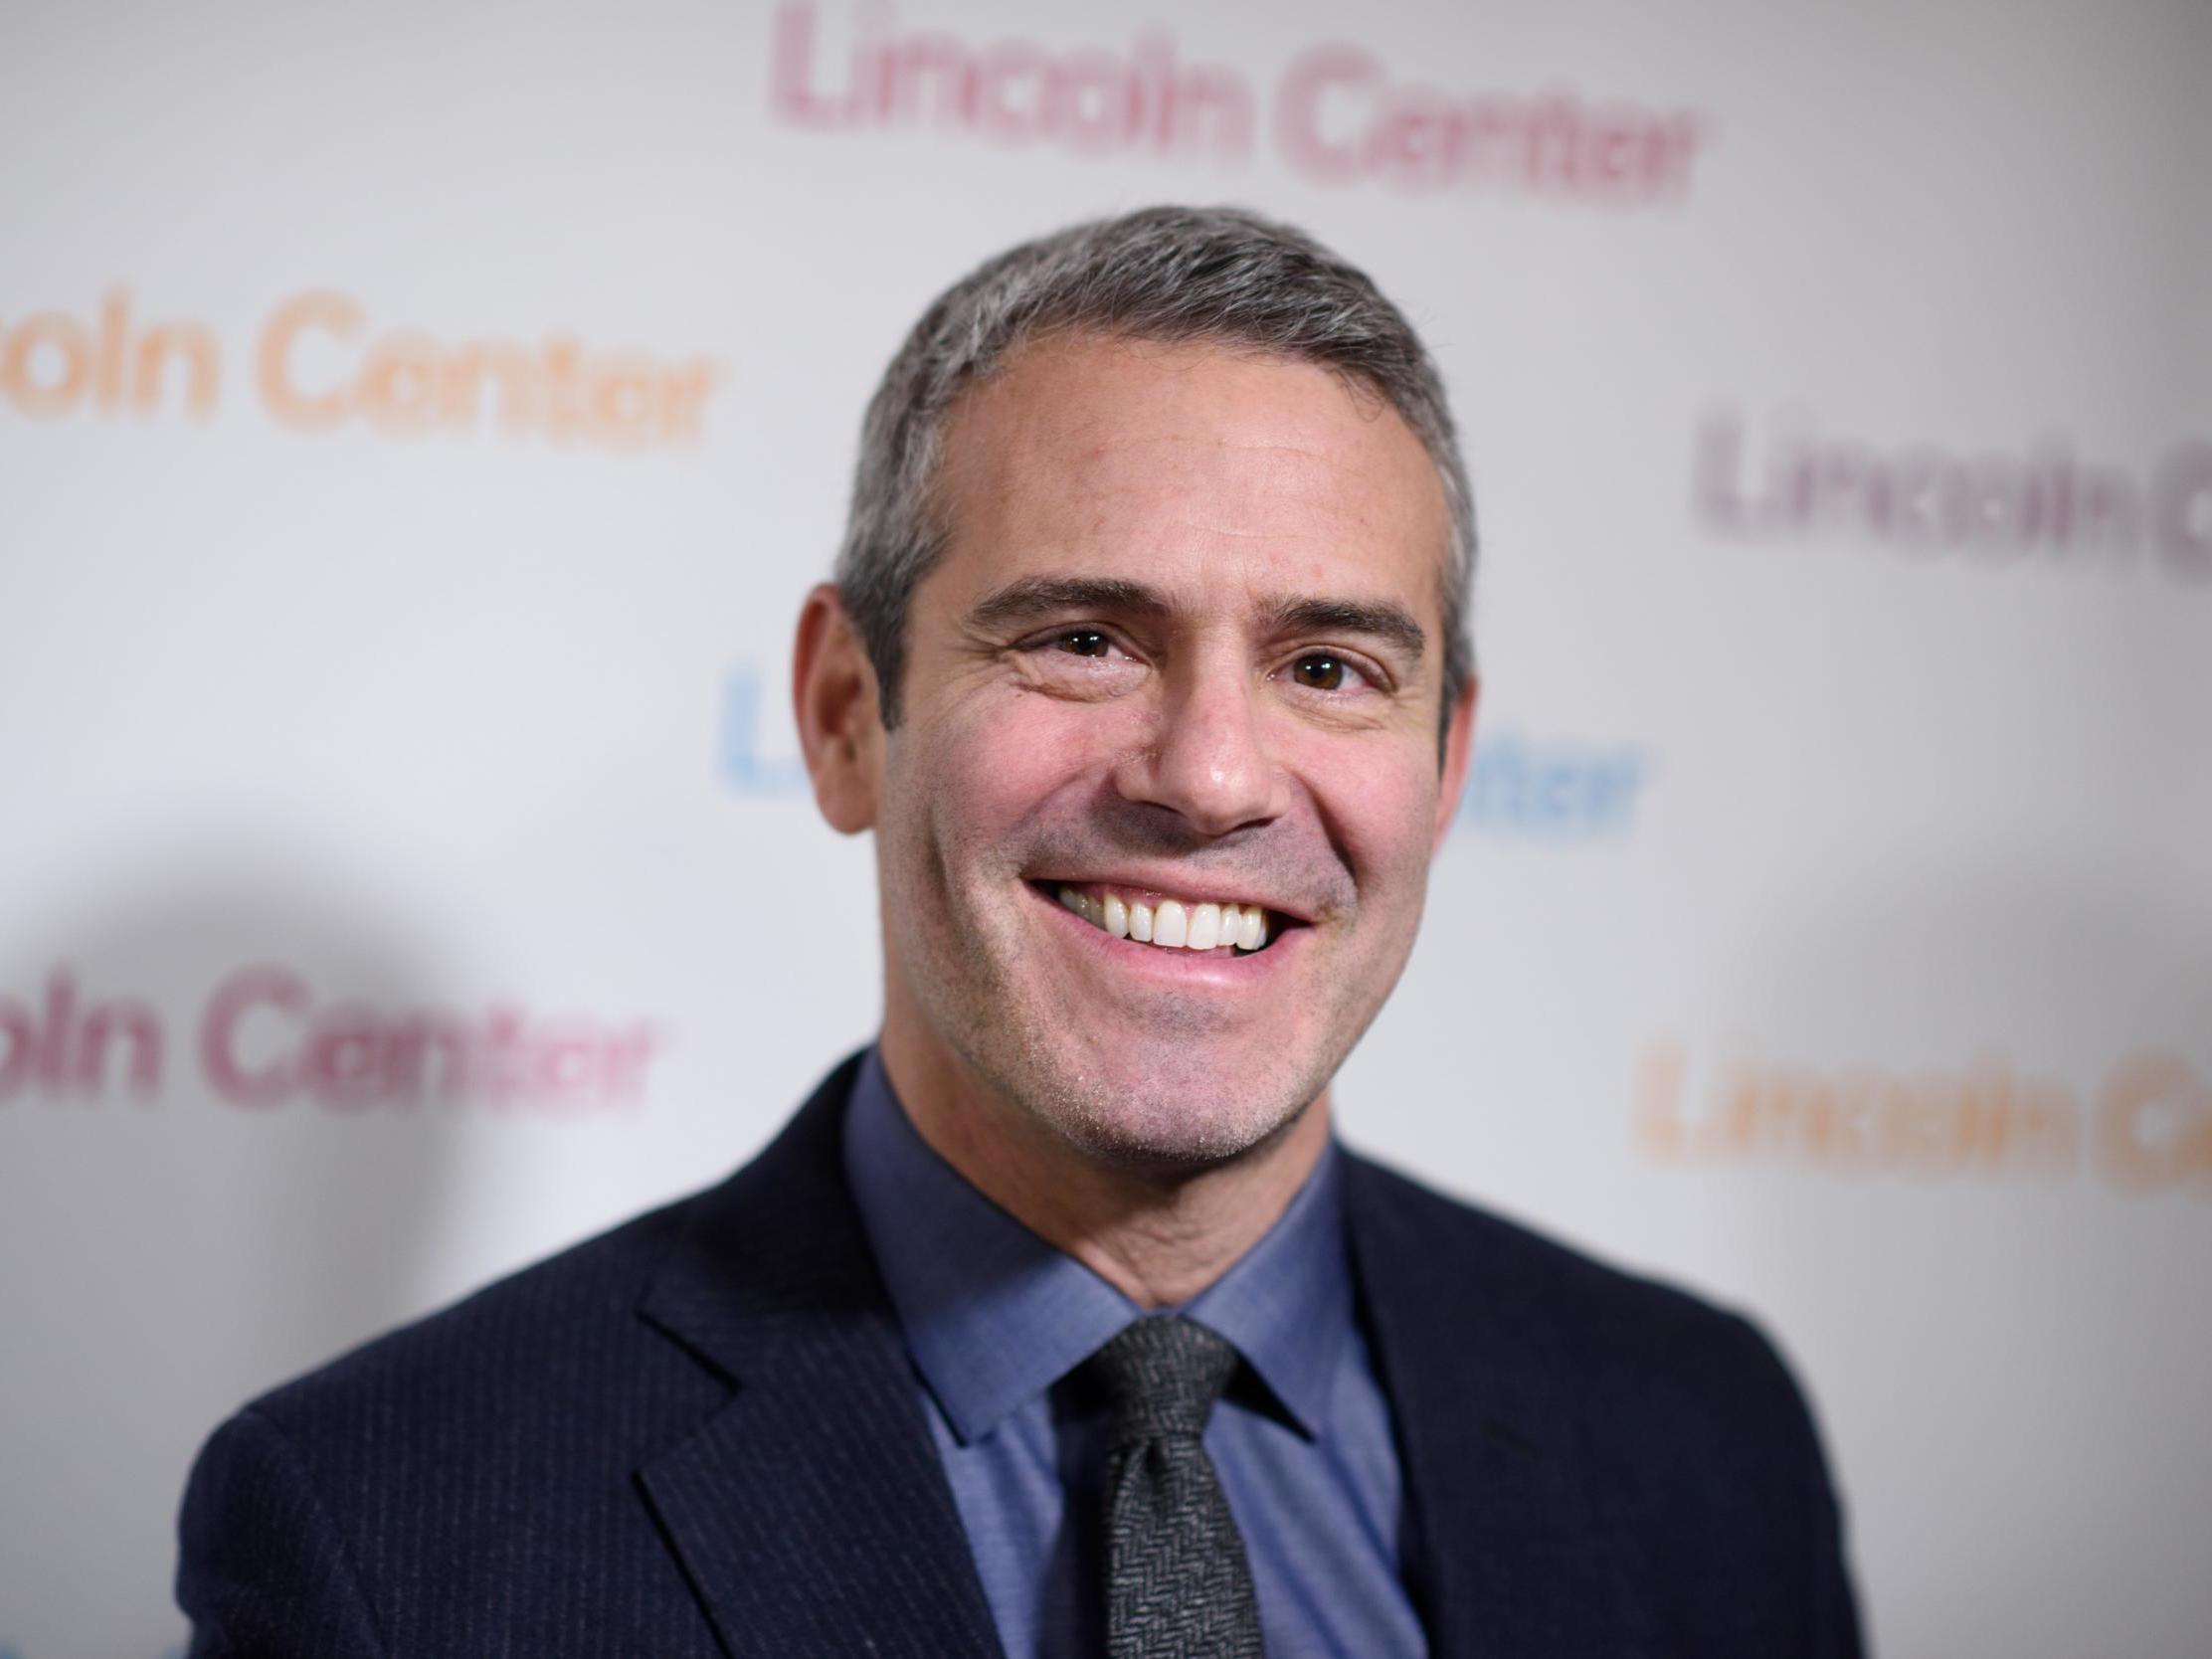 Coronavirus: American talk show host Andy Cohen tests positive for Covid-19